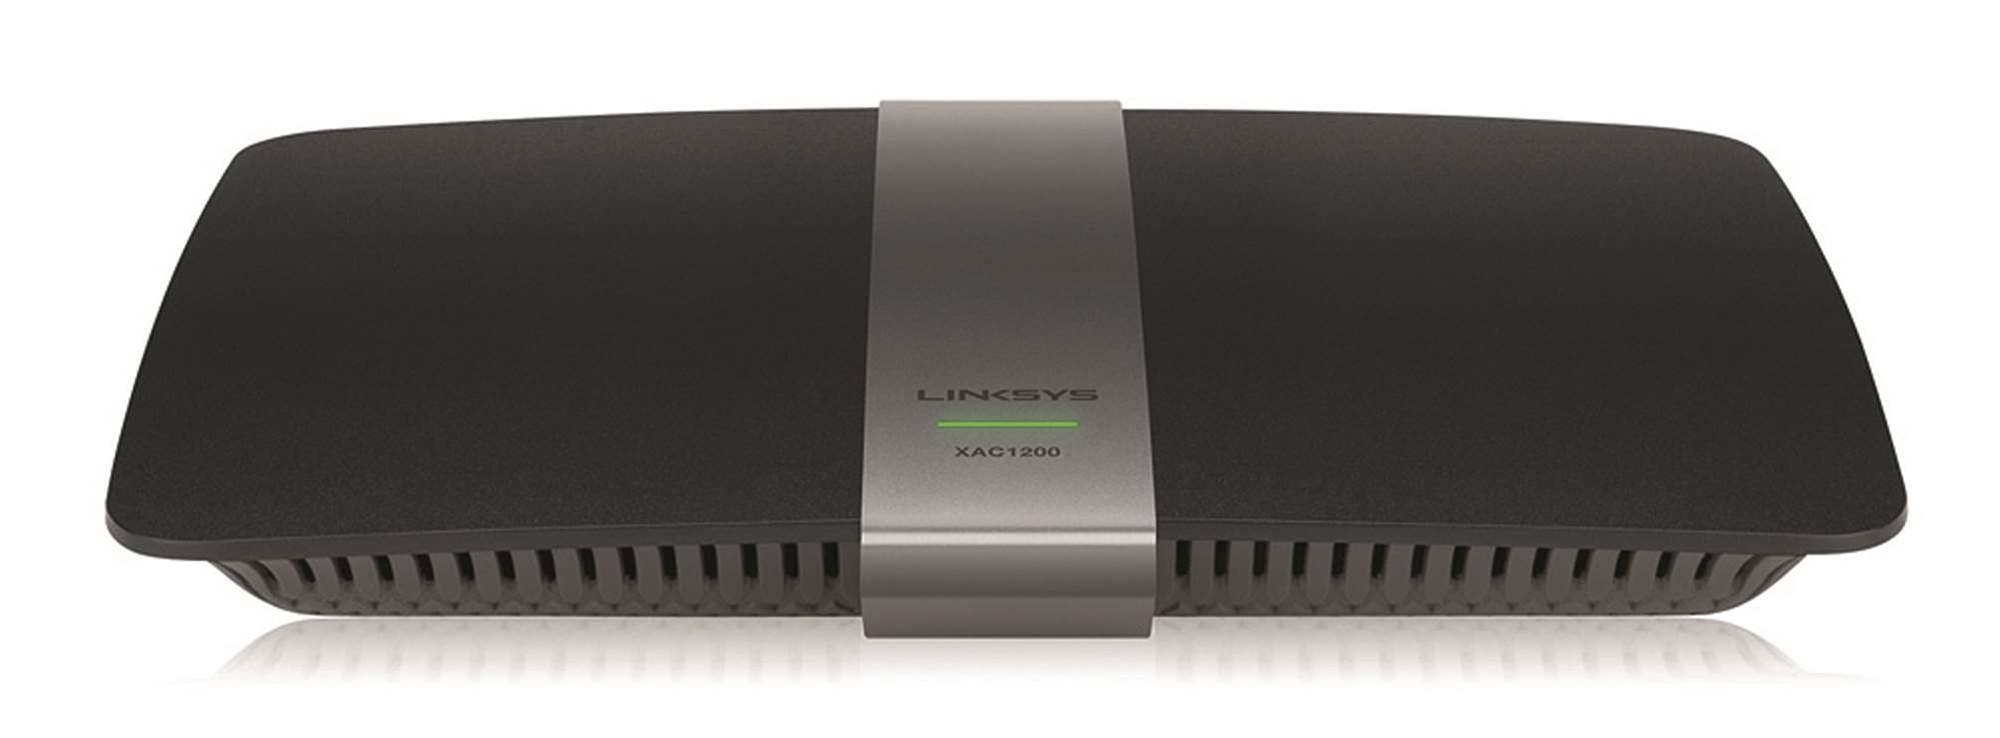 Review: Linksys XAC1200